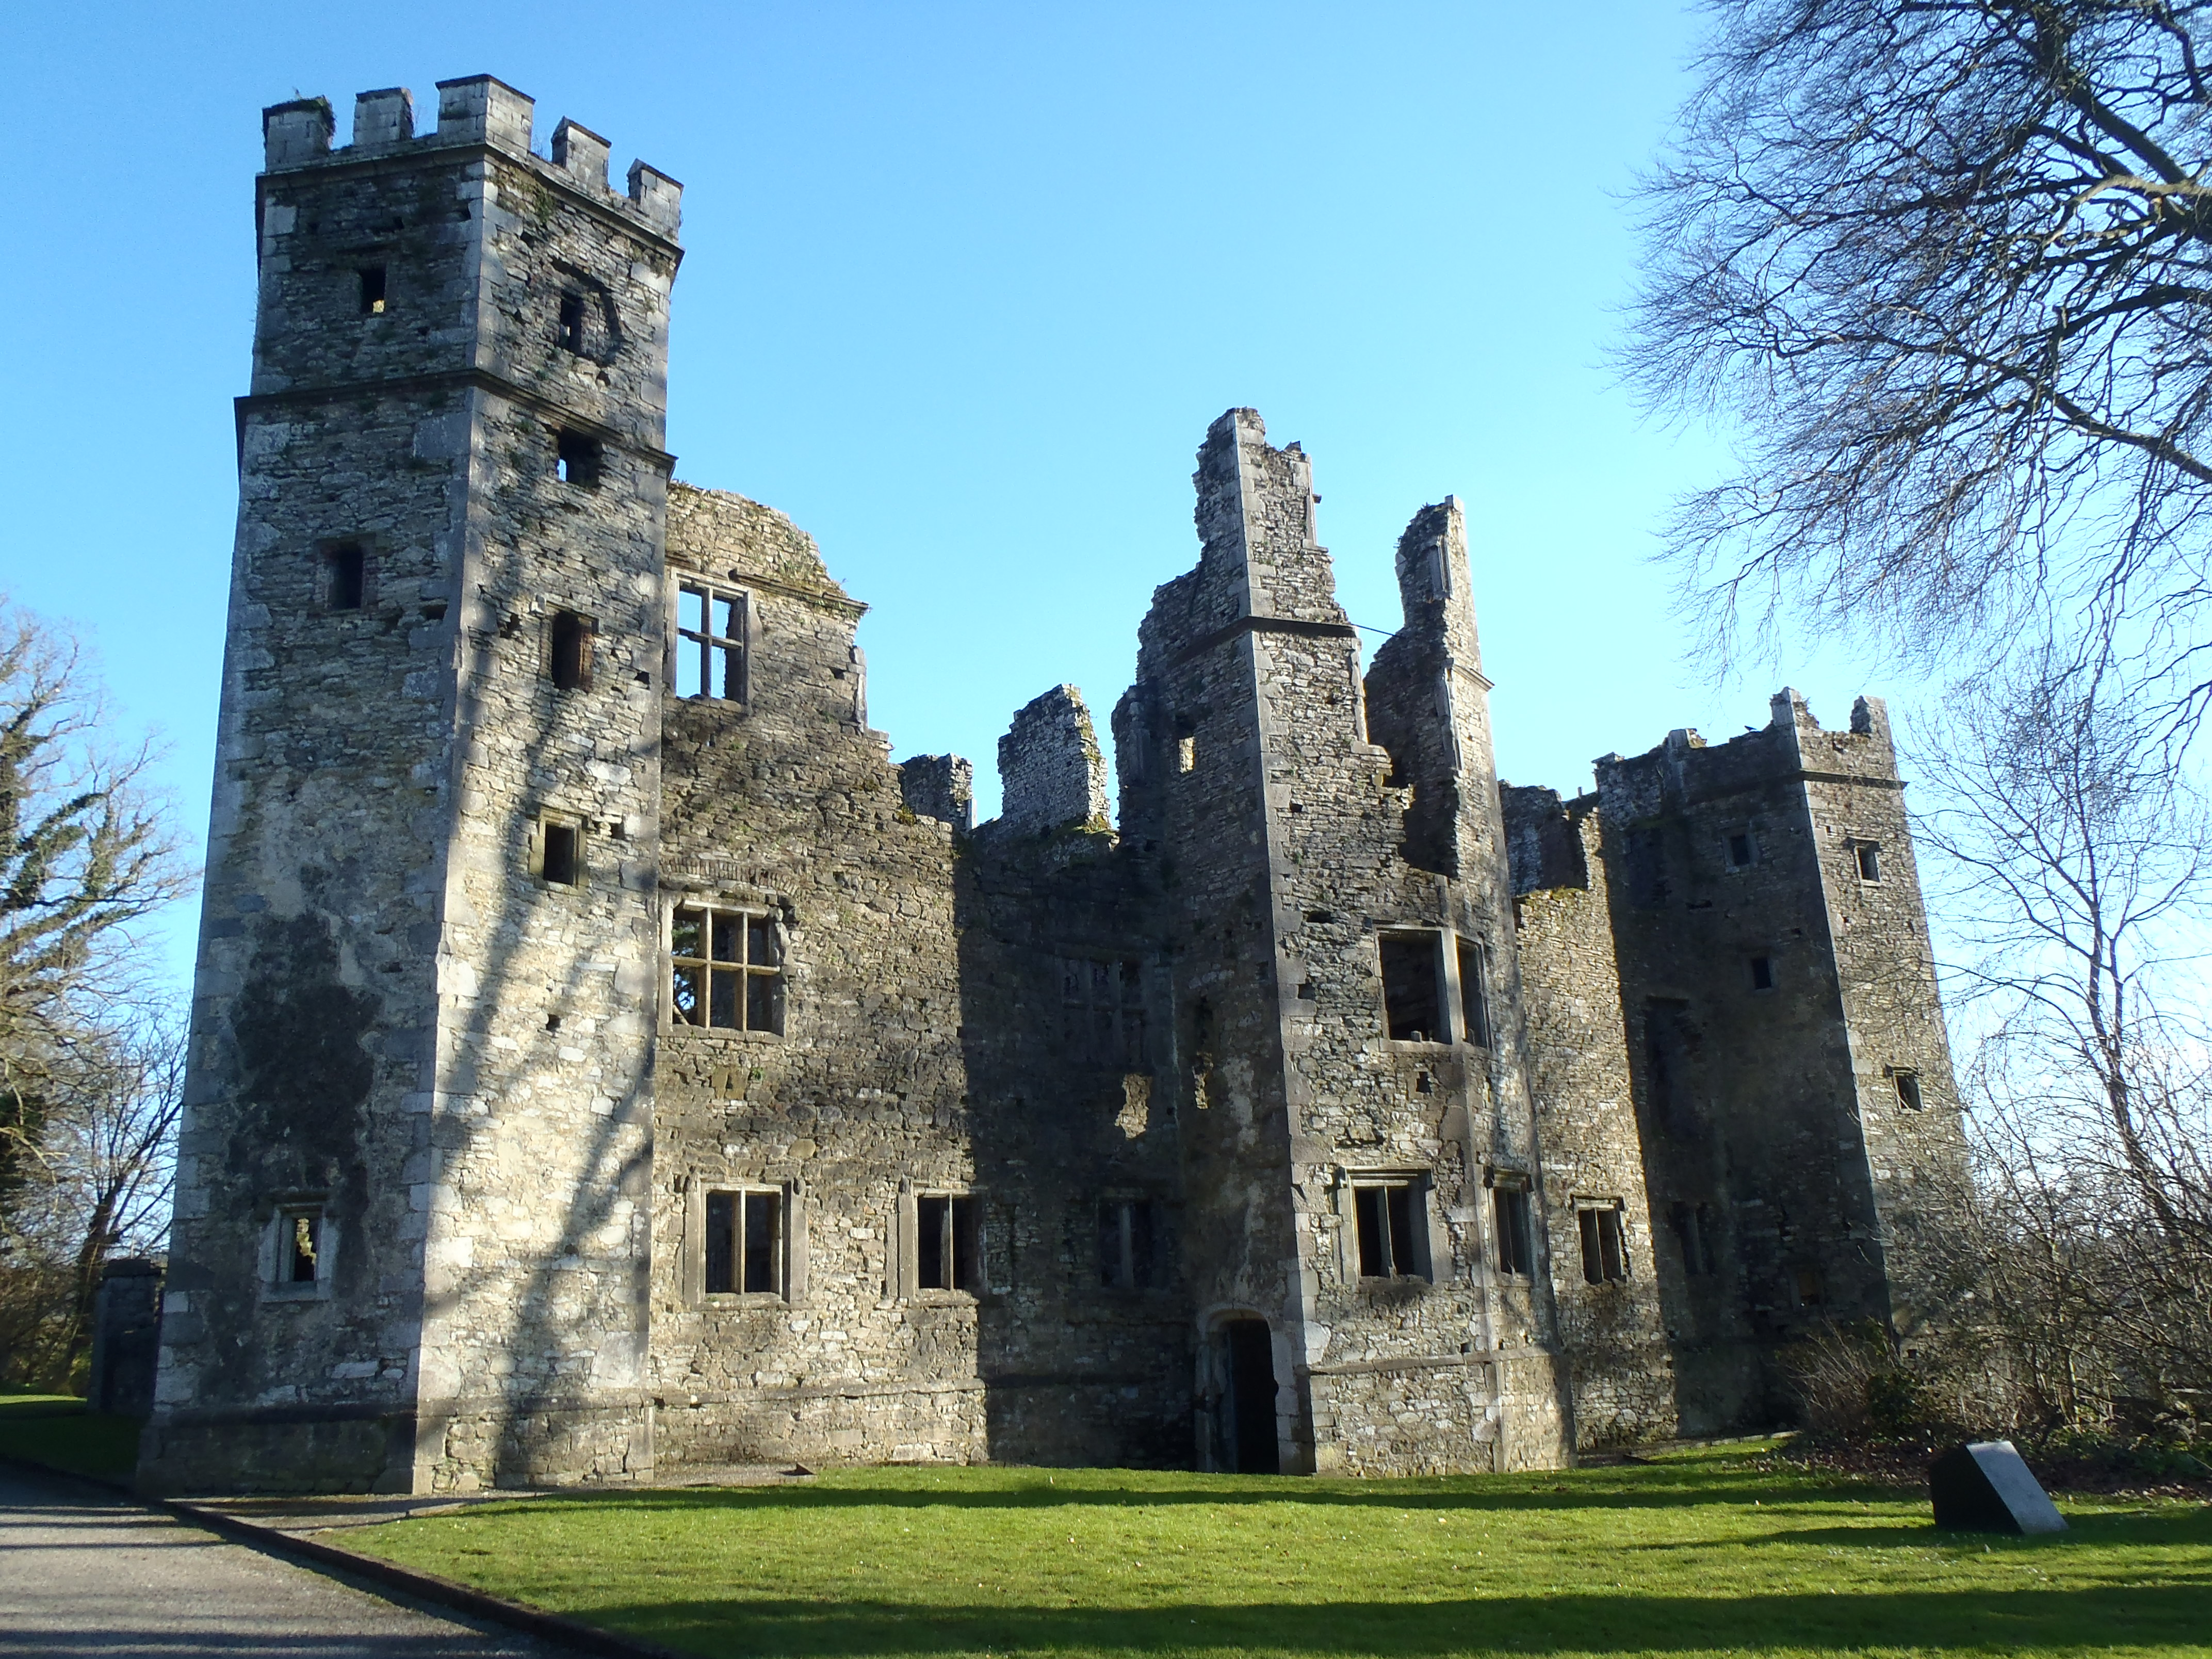 mallow castle park, mallow town park and spa house park